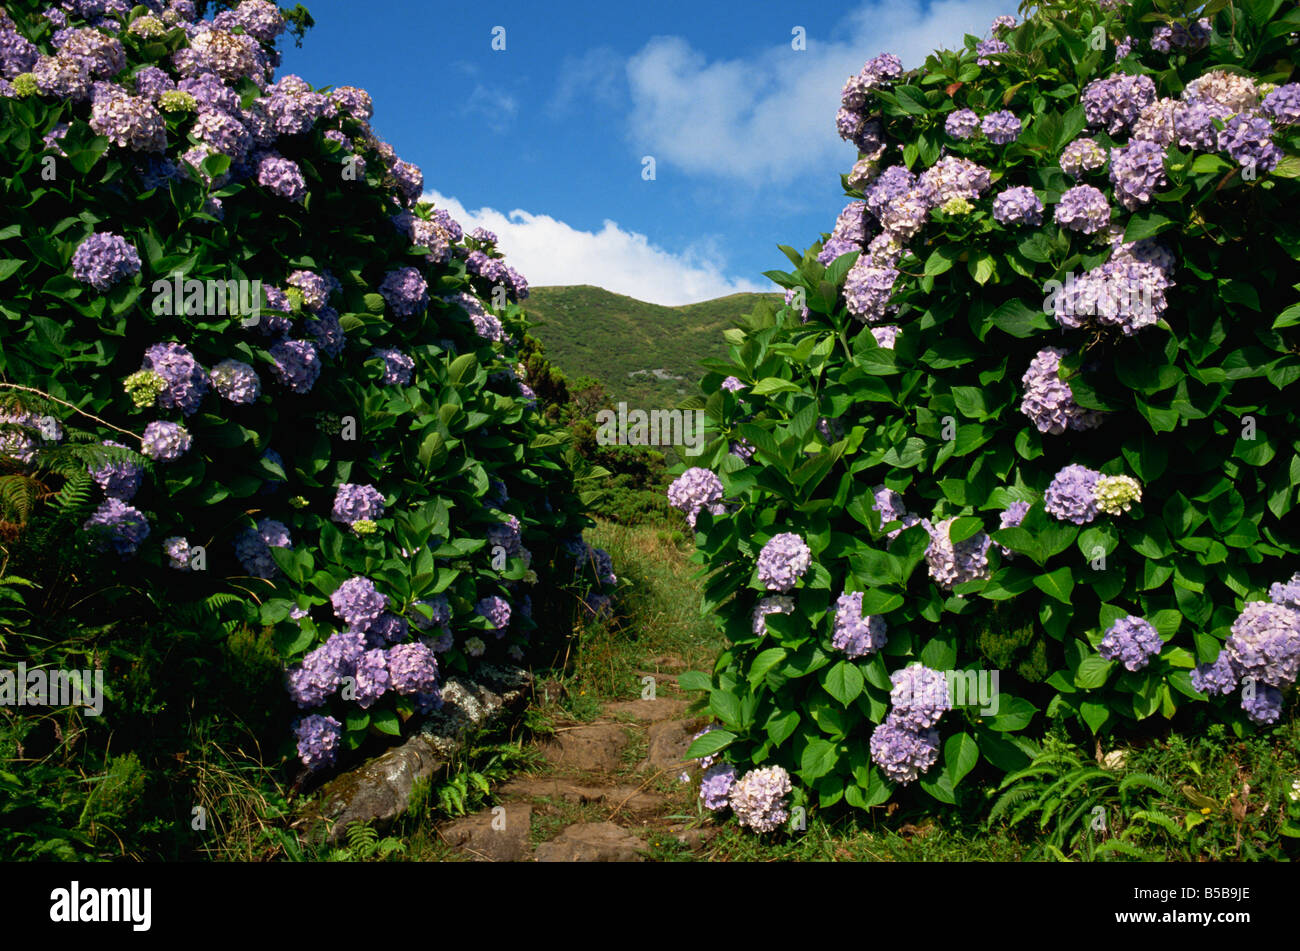 Hydrangeas a feature of the landscape of the island Sao Jorge Azores Portugal Europe - Stock Image